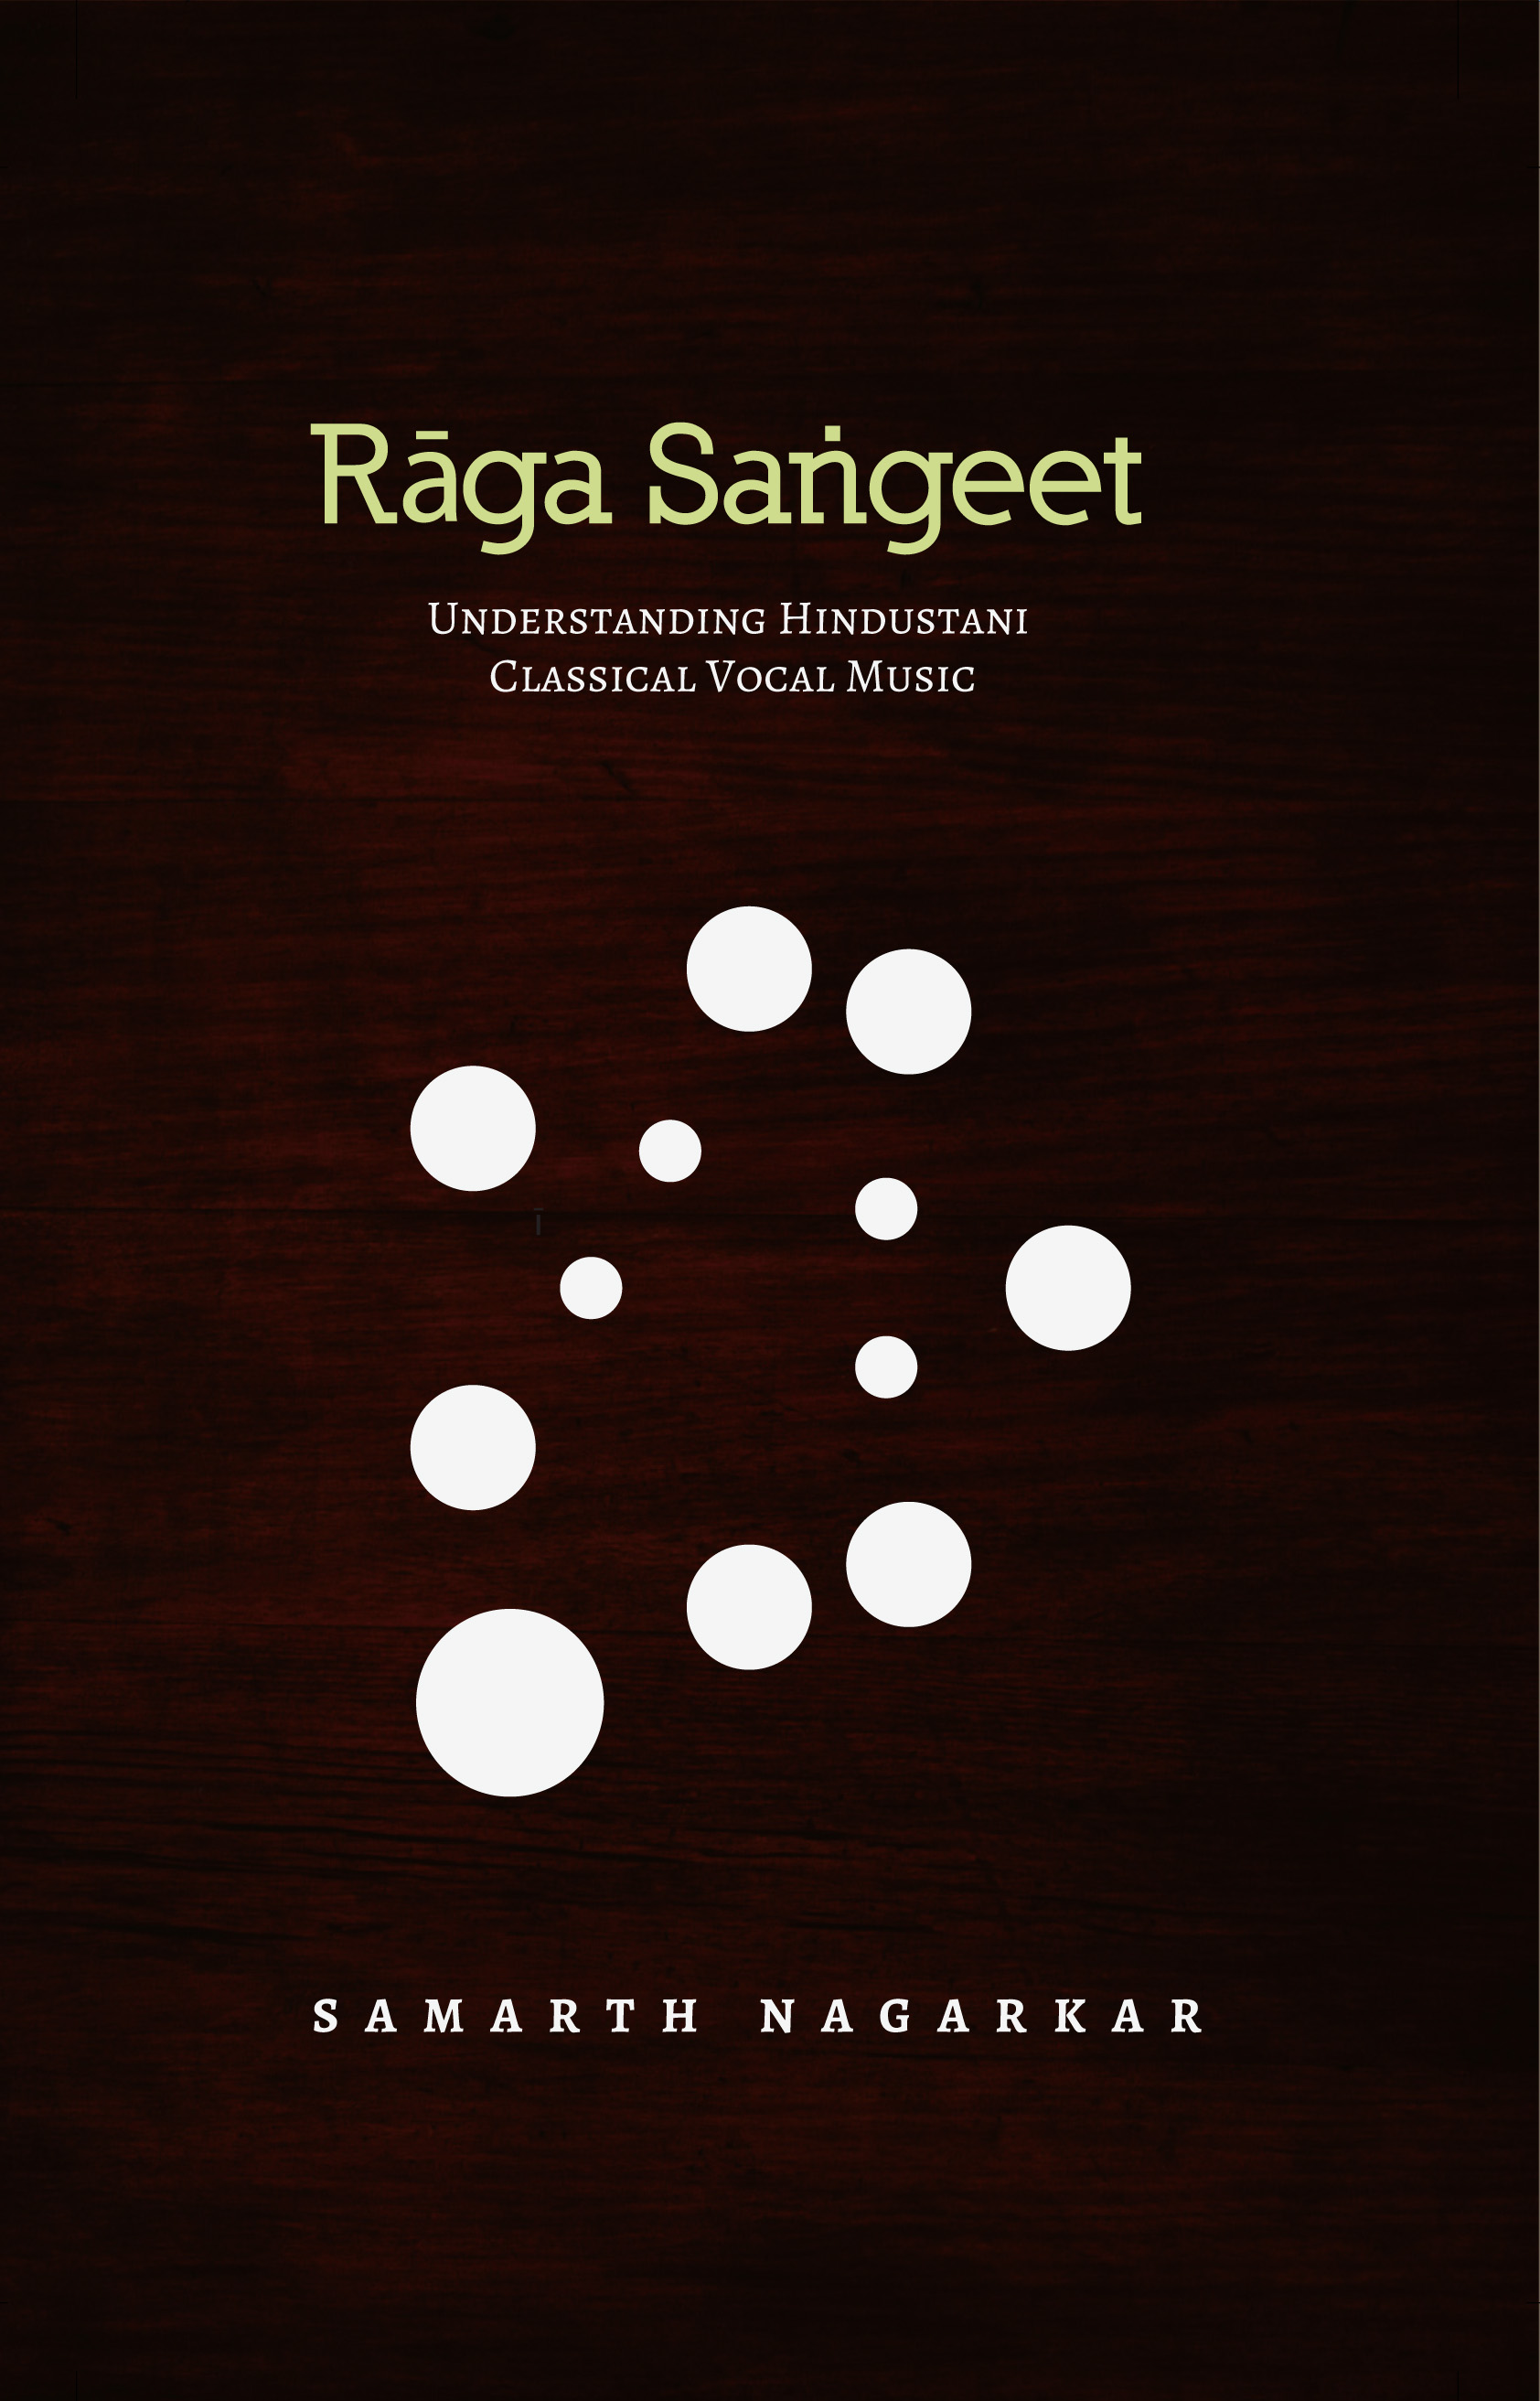 Raga Sangeet Book Cover